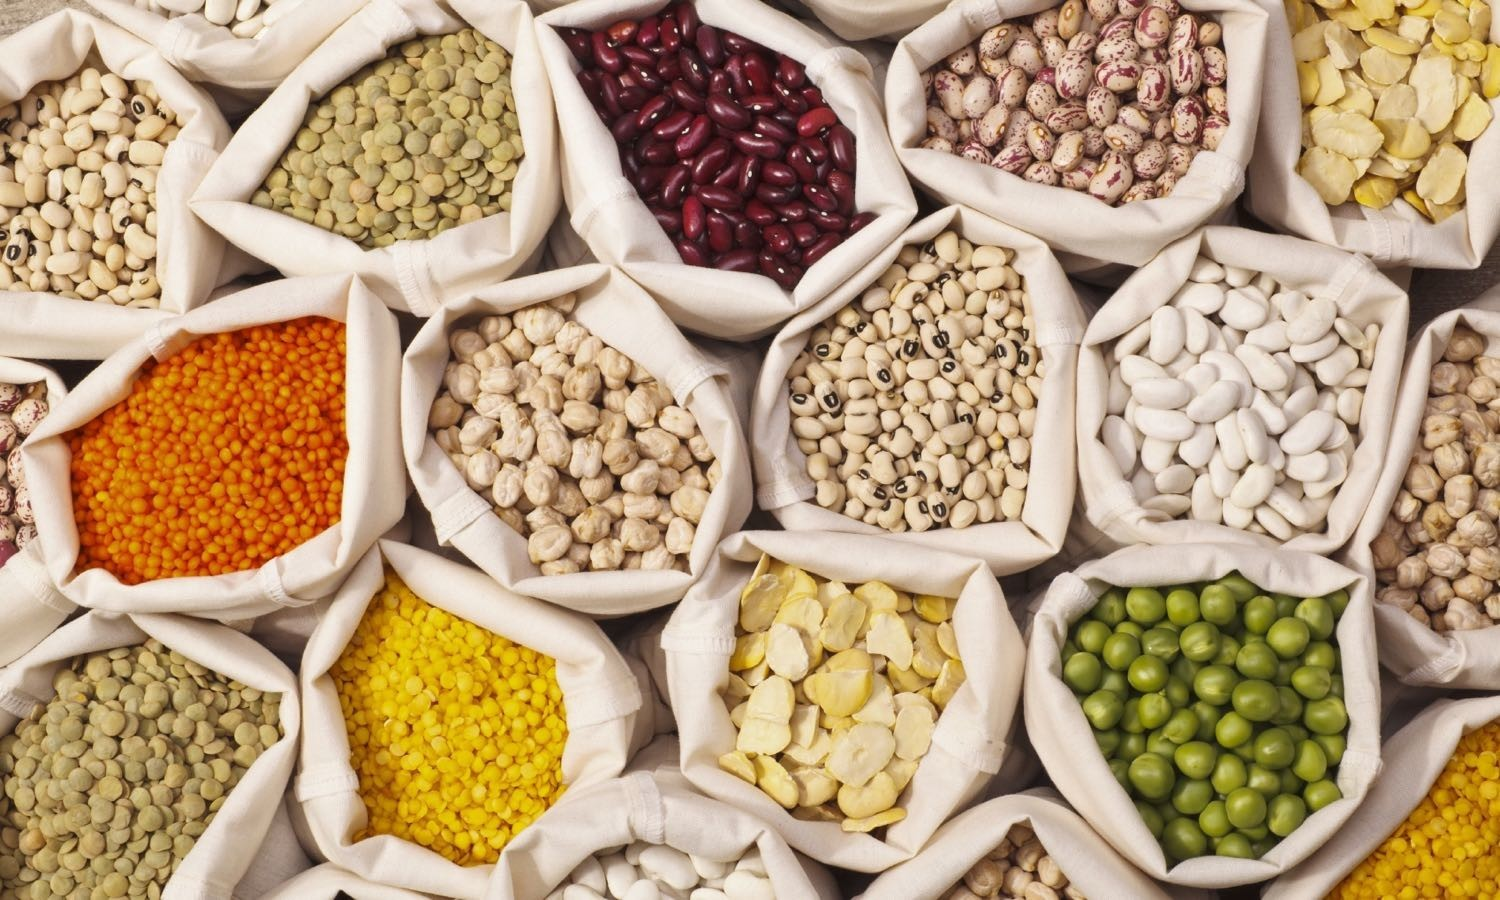 The United Nations General Assembly declared 2016 the International Year of Pulses